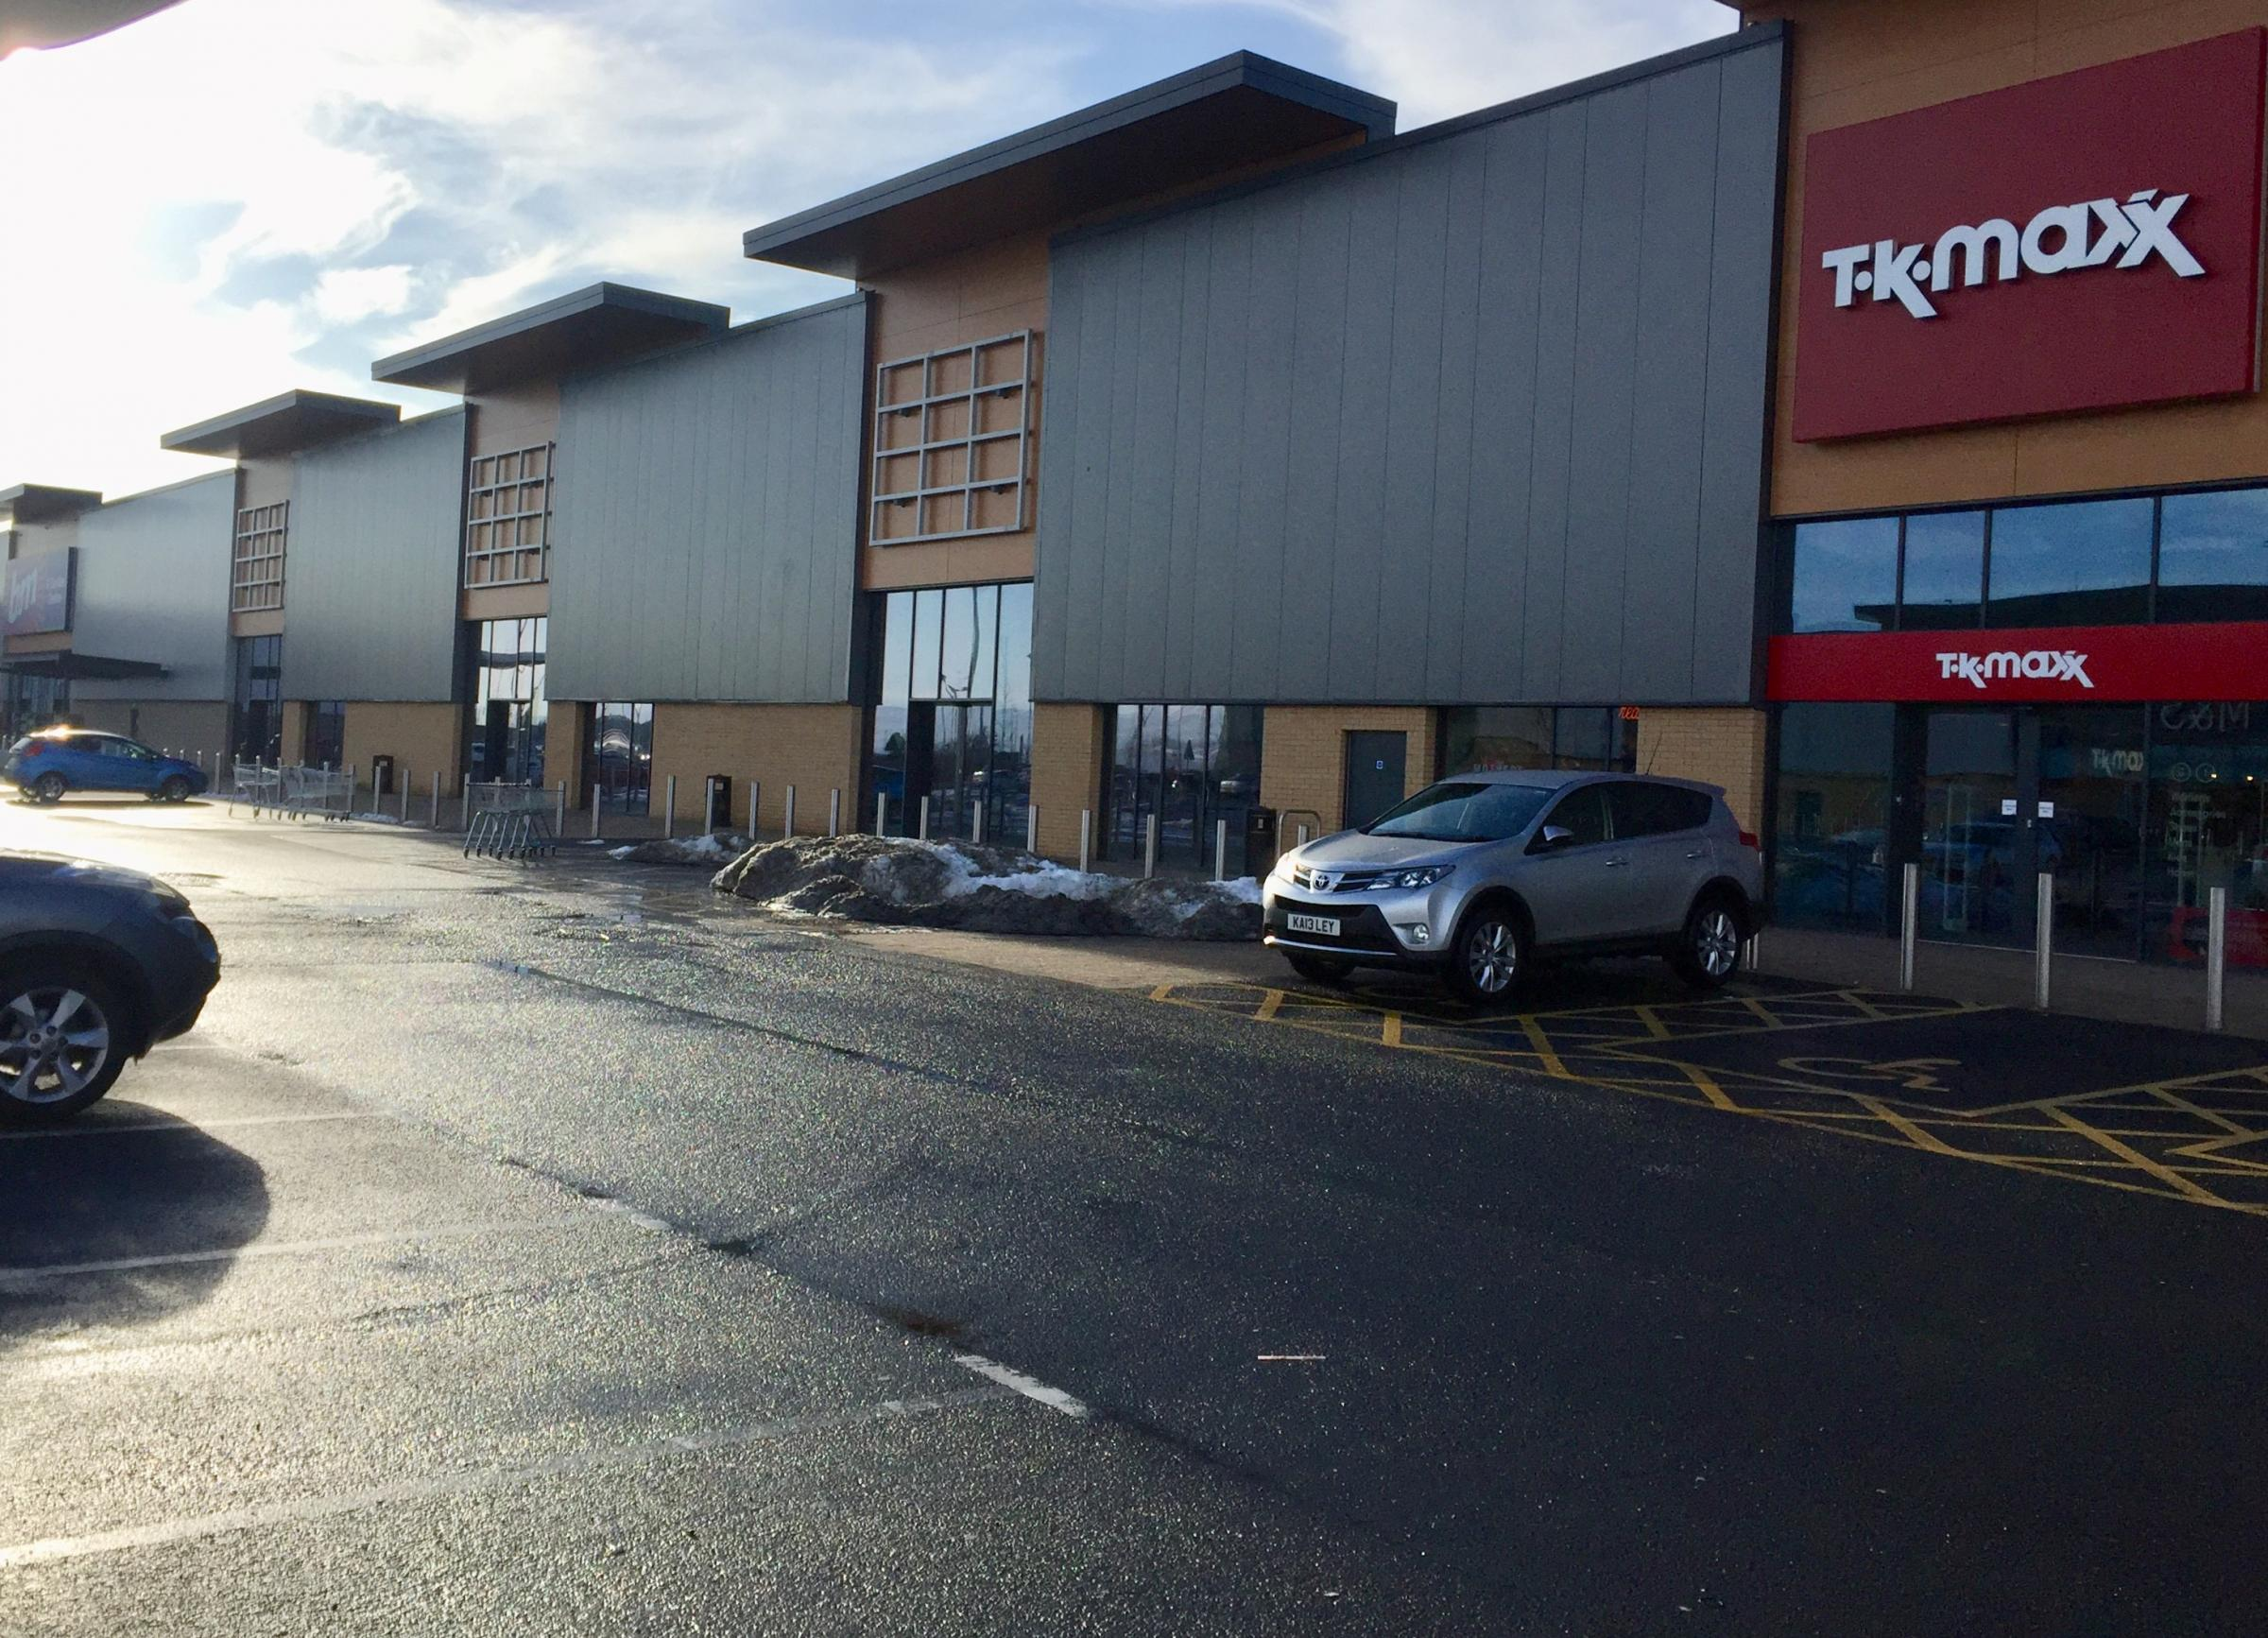 Frozen food outlet to bring 30 jobs to Port retail park